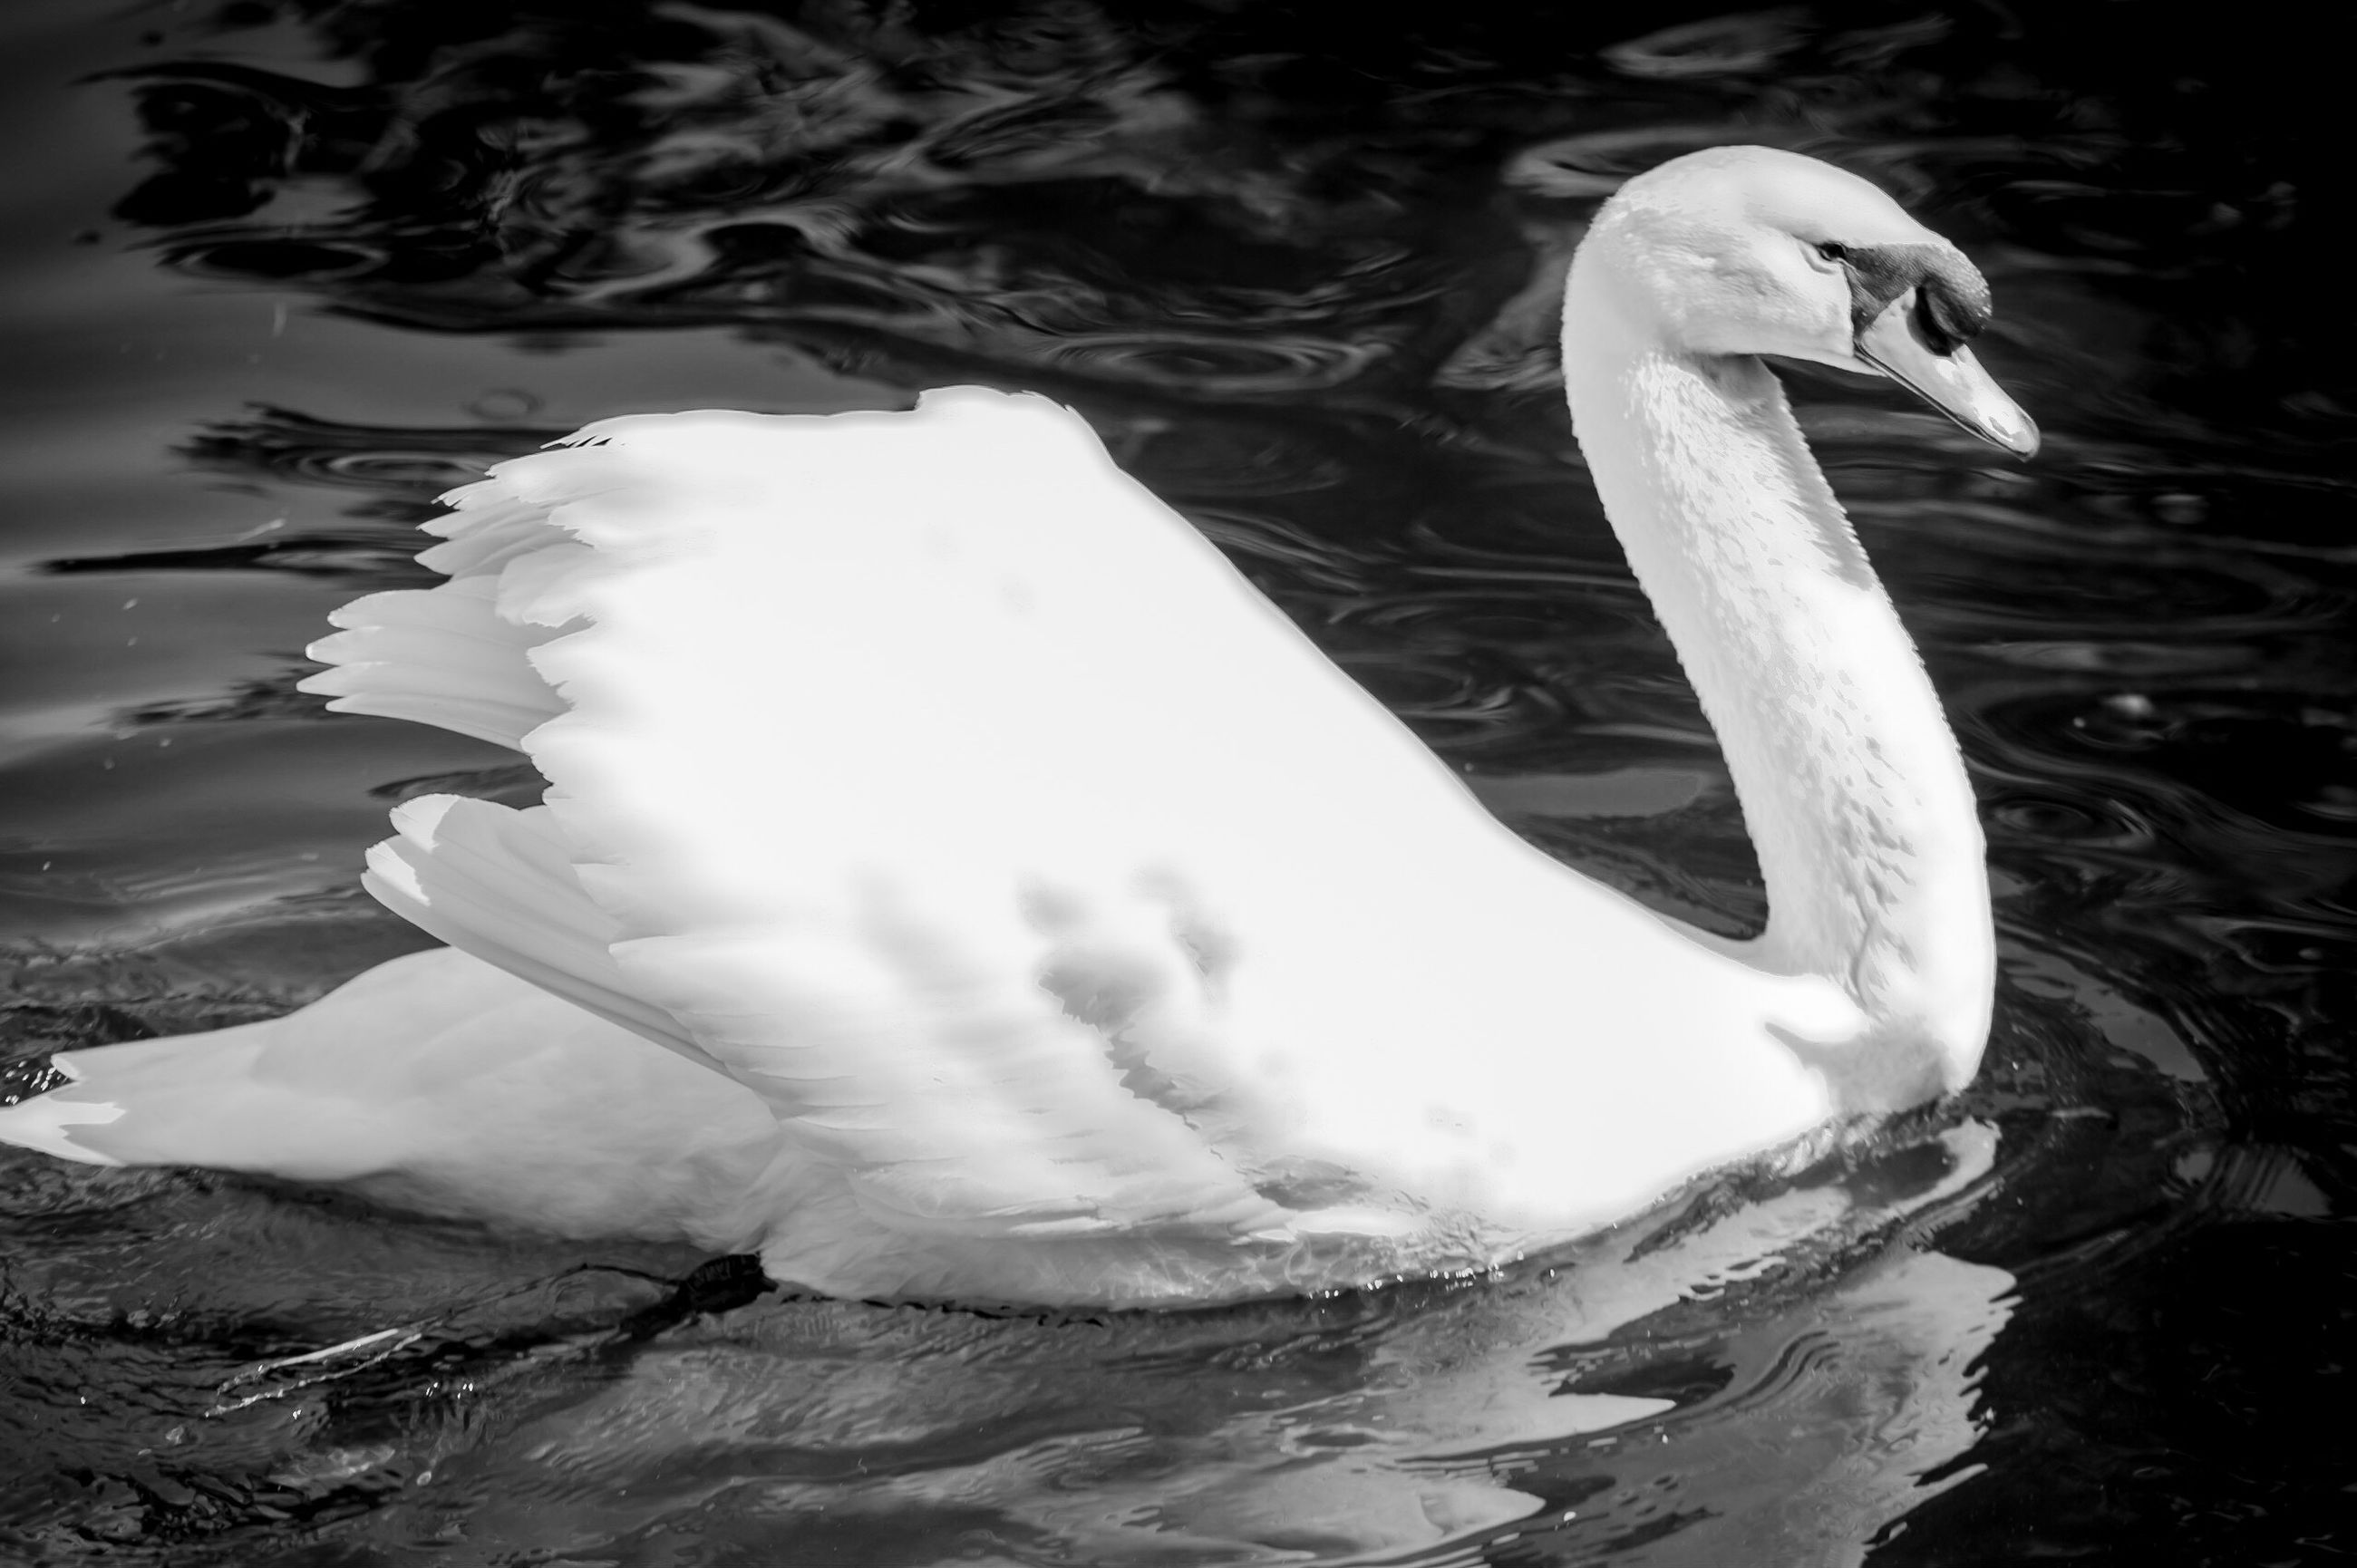 bird, white color, one animal, animals in the wild, animal themes, swan, water, nature, no people, close-up, outdoors, day, beauty in nature